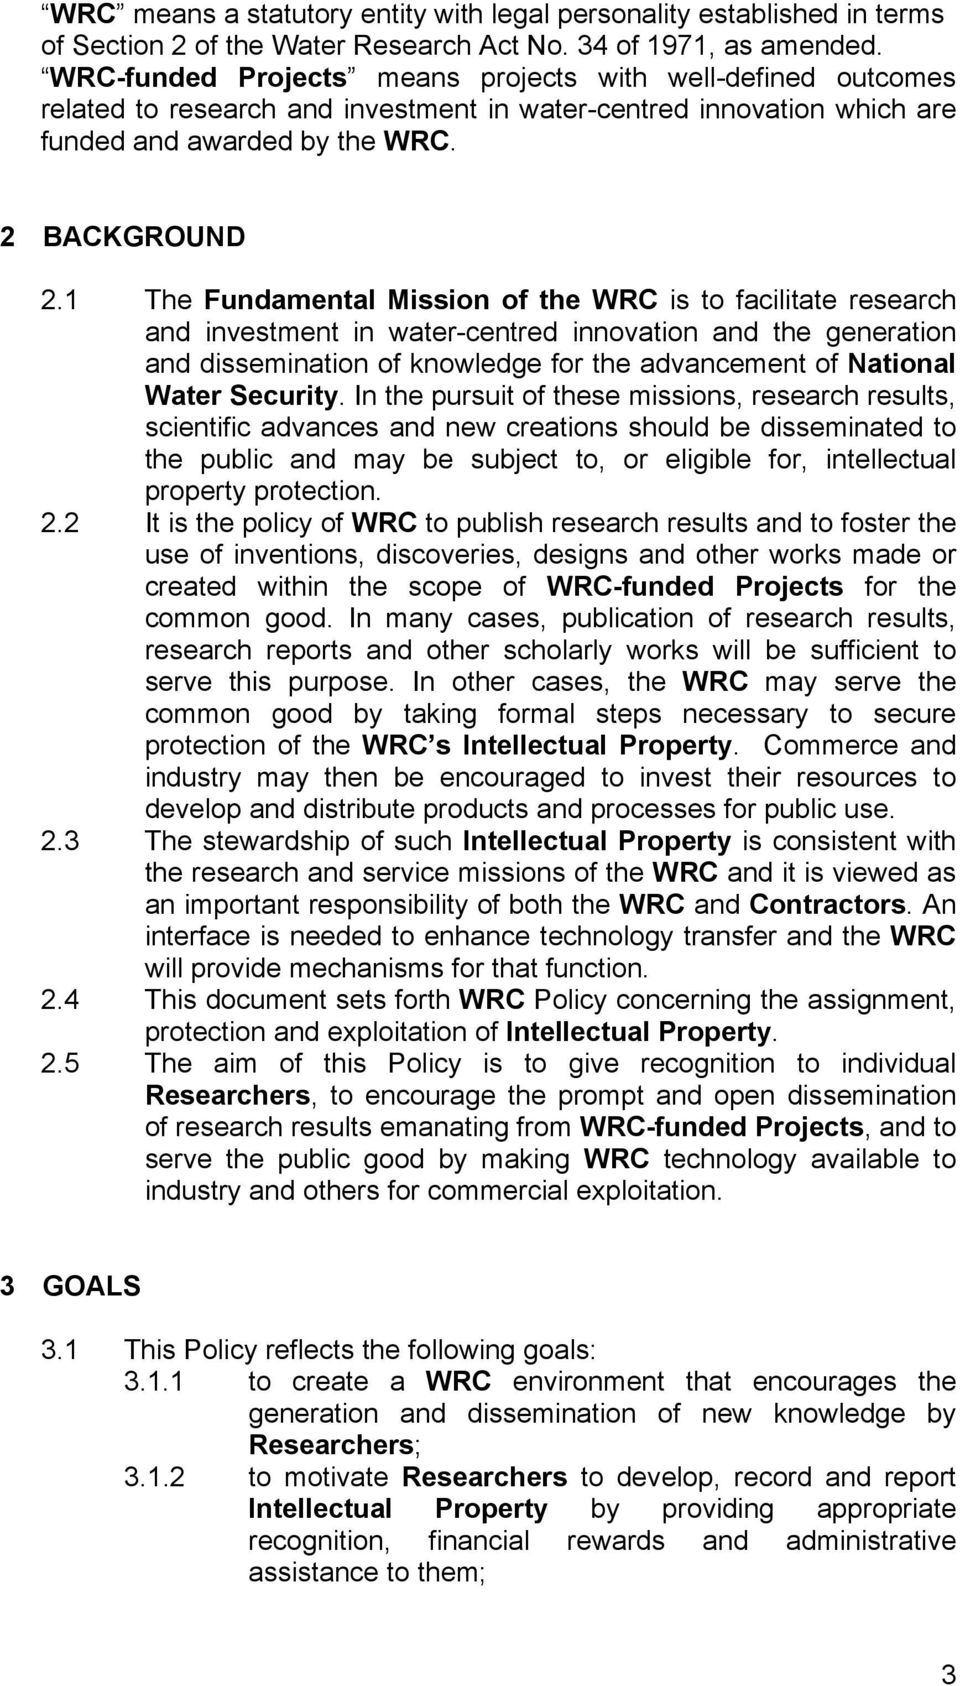 1 The Fundamental Mission of the WRC is to facilitate research and investment in water-centred innovation and the generation and dissemination of knowledge for the advancement of National Water